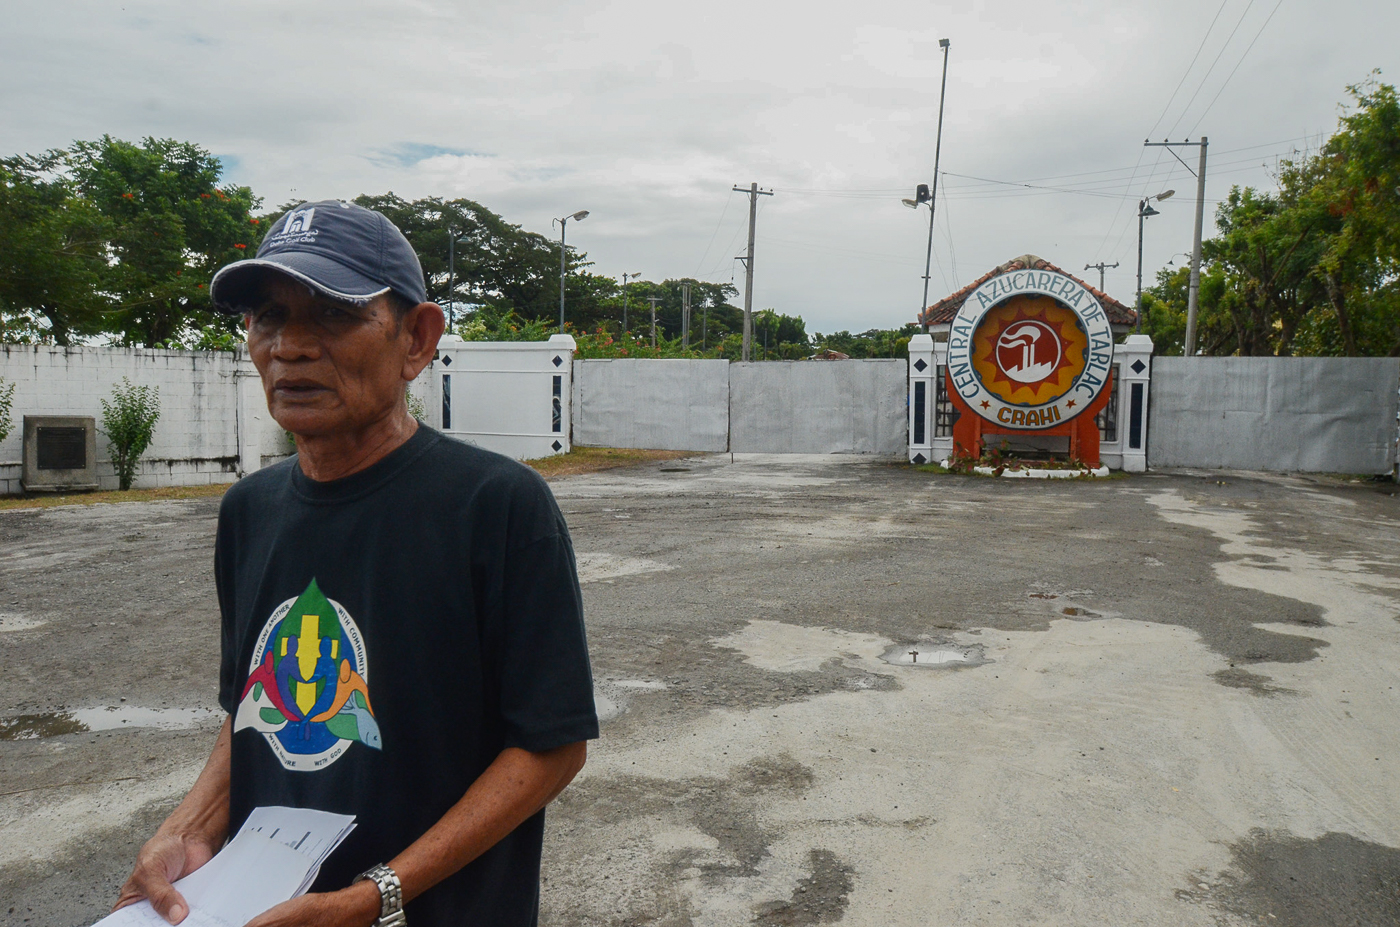 IN GRIEF. Pastor Gab Sanchez prepares his speech in front of the Central Azucarera De Tarlac. Sanchez lost his son Juancho, 20 years old then, when he was fatally shot.